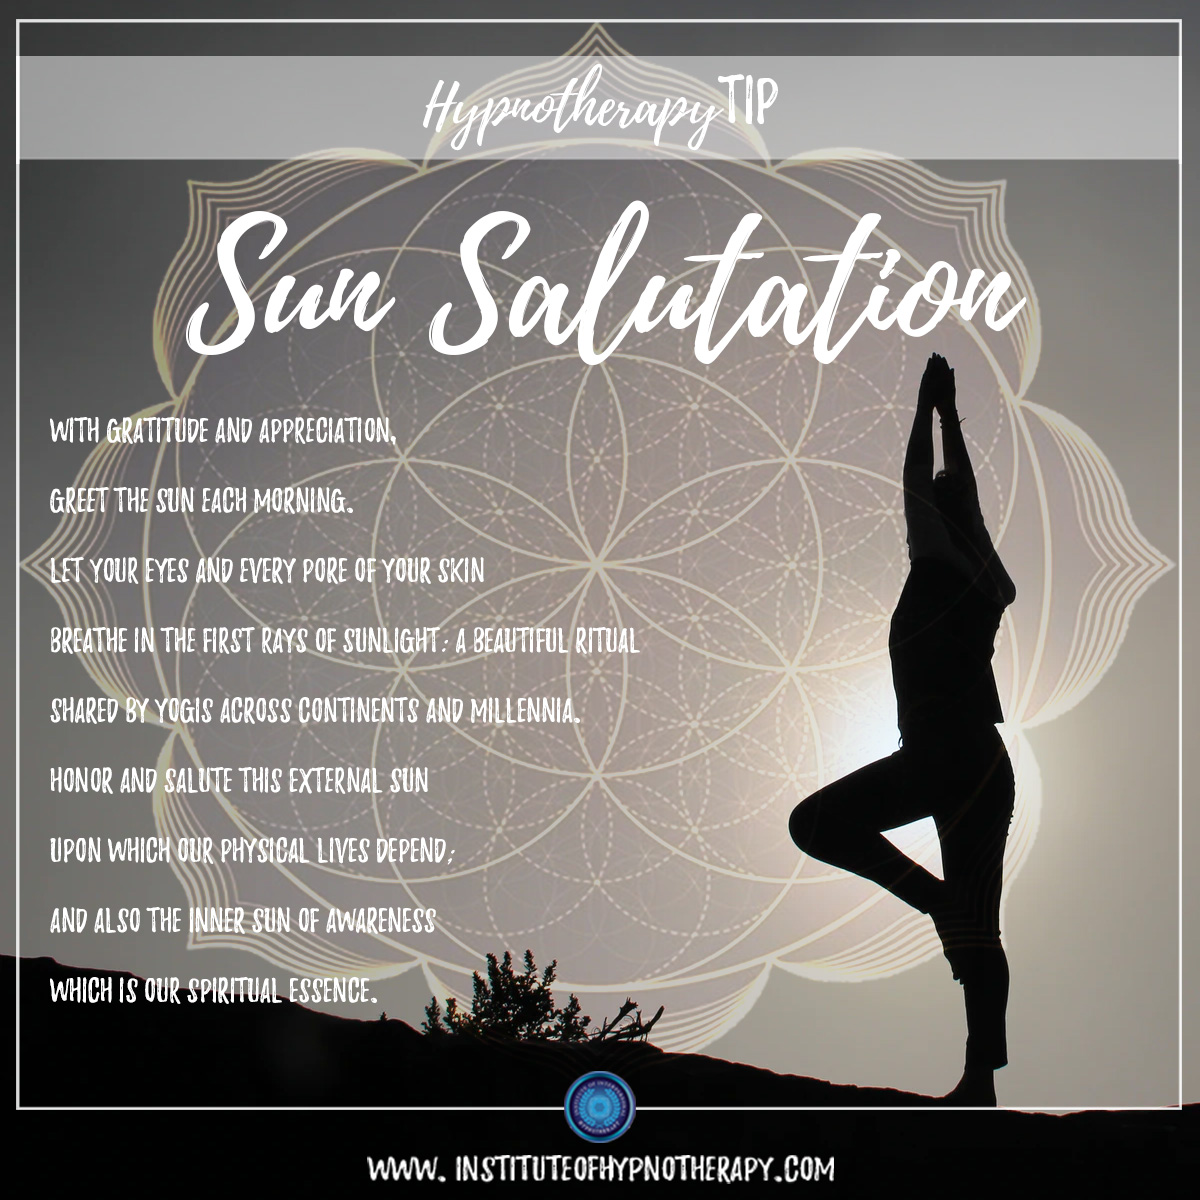 Hypnotherapy Tip : Sun Salutation